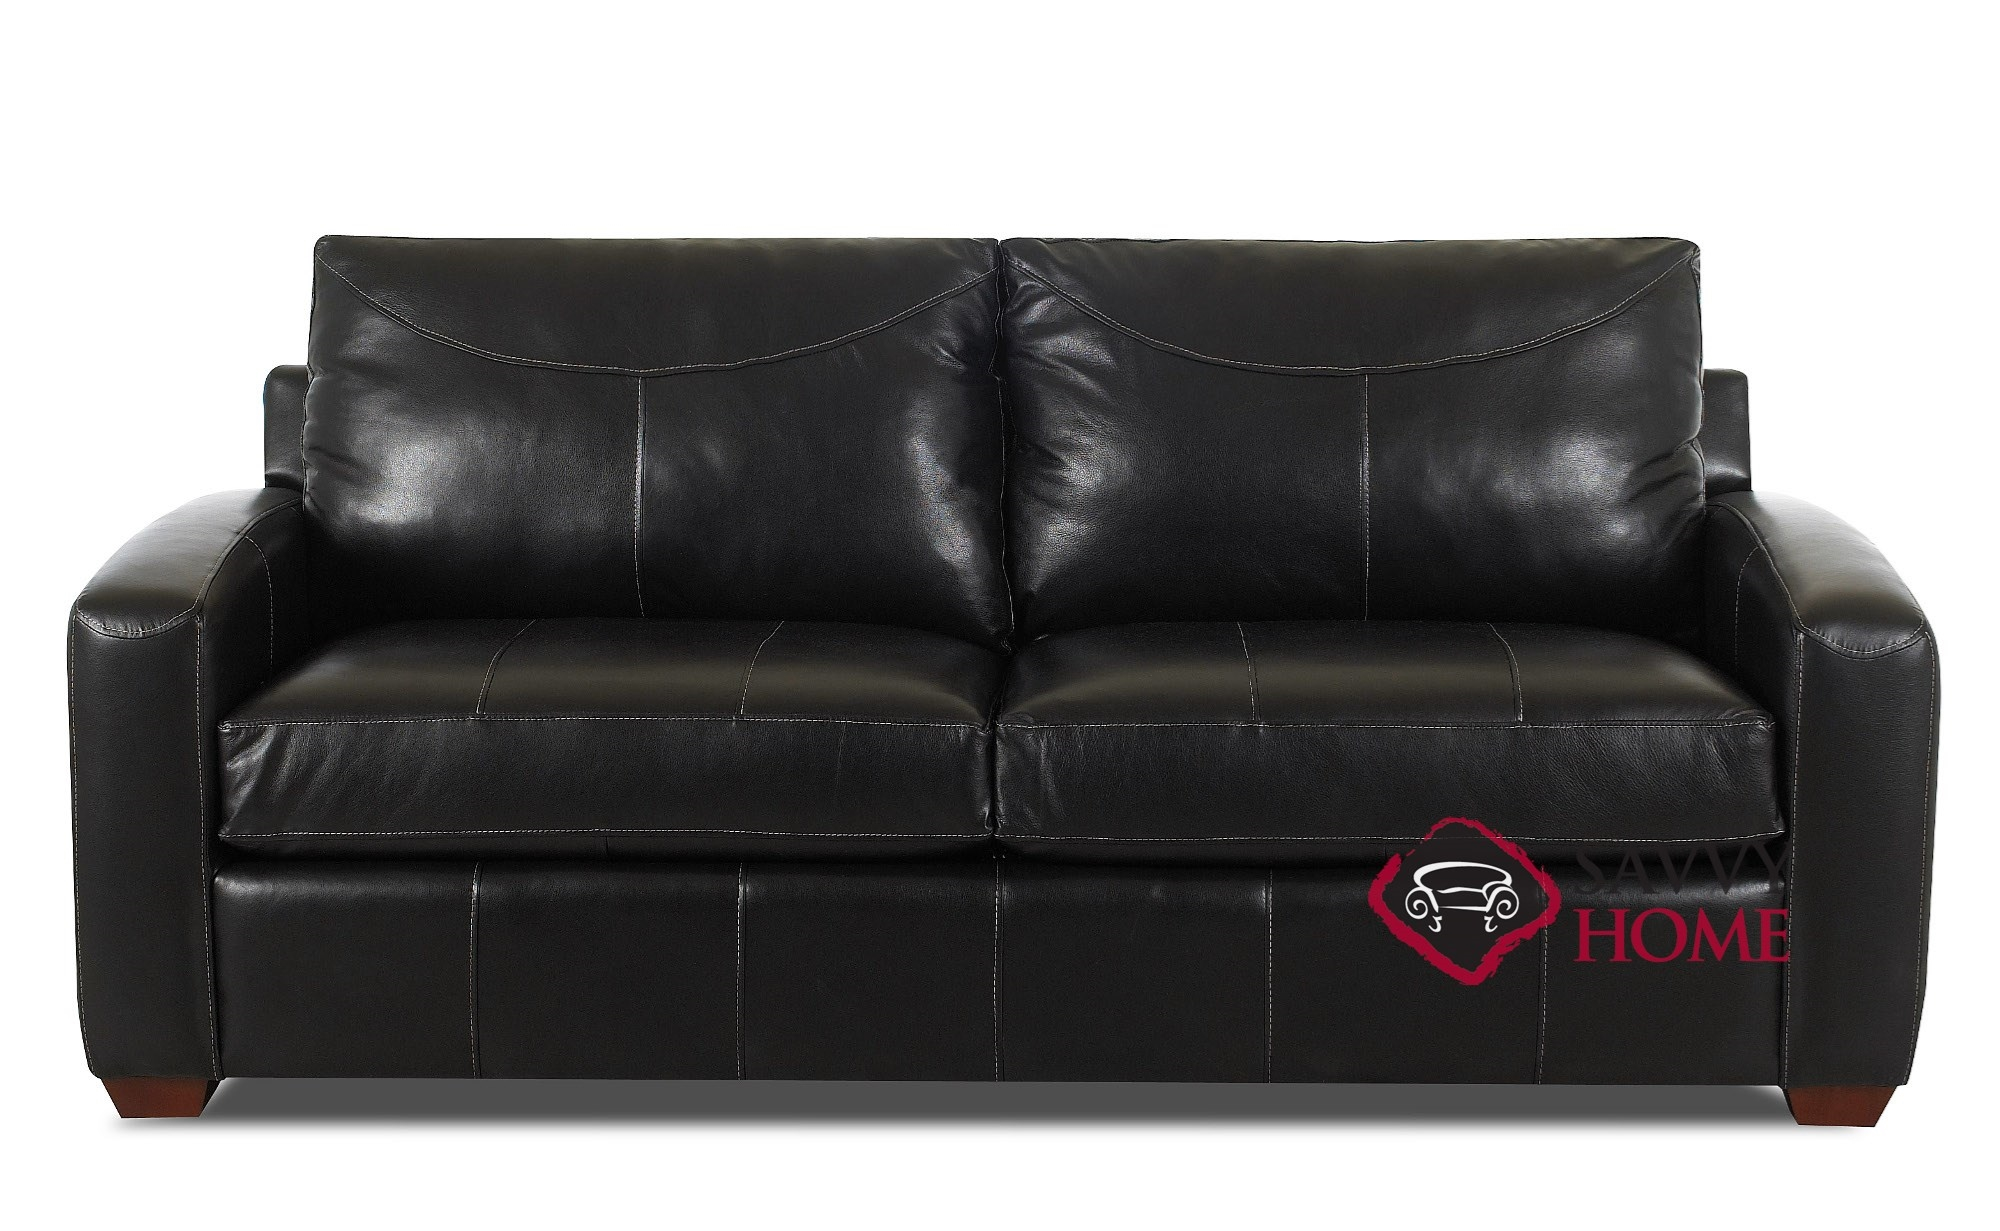 Quick-Ship Boulder Leather Sleeper Sofas Full in Durango Black by Savvy  with Fast Shipping | SavvyHomeStore.com